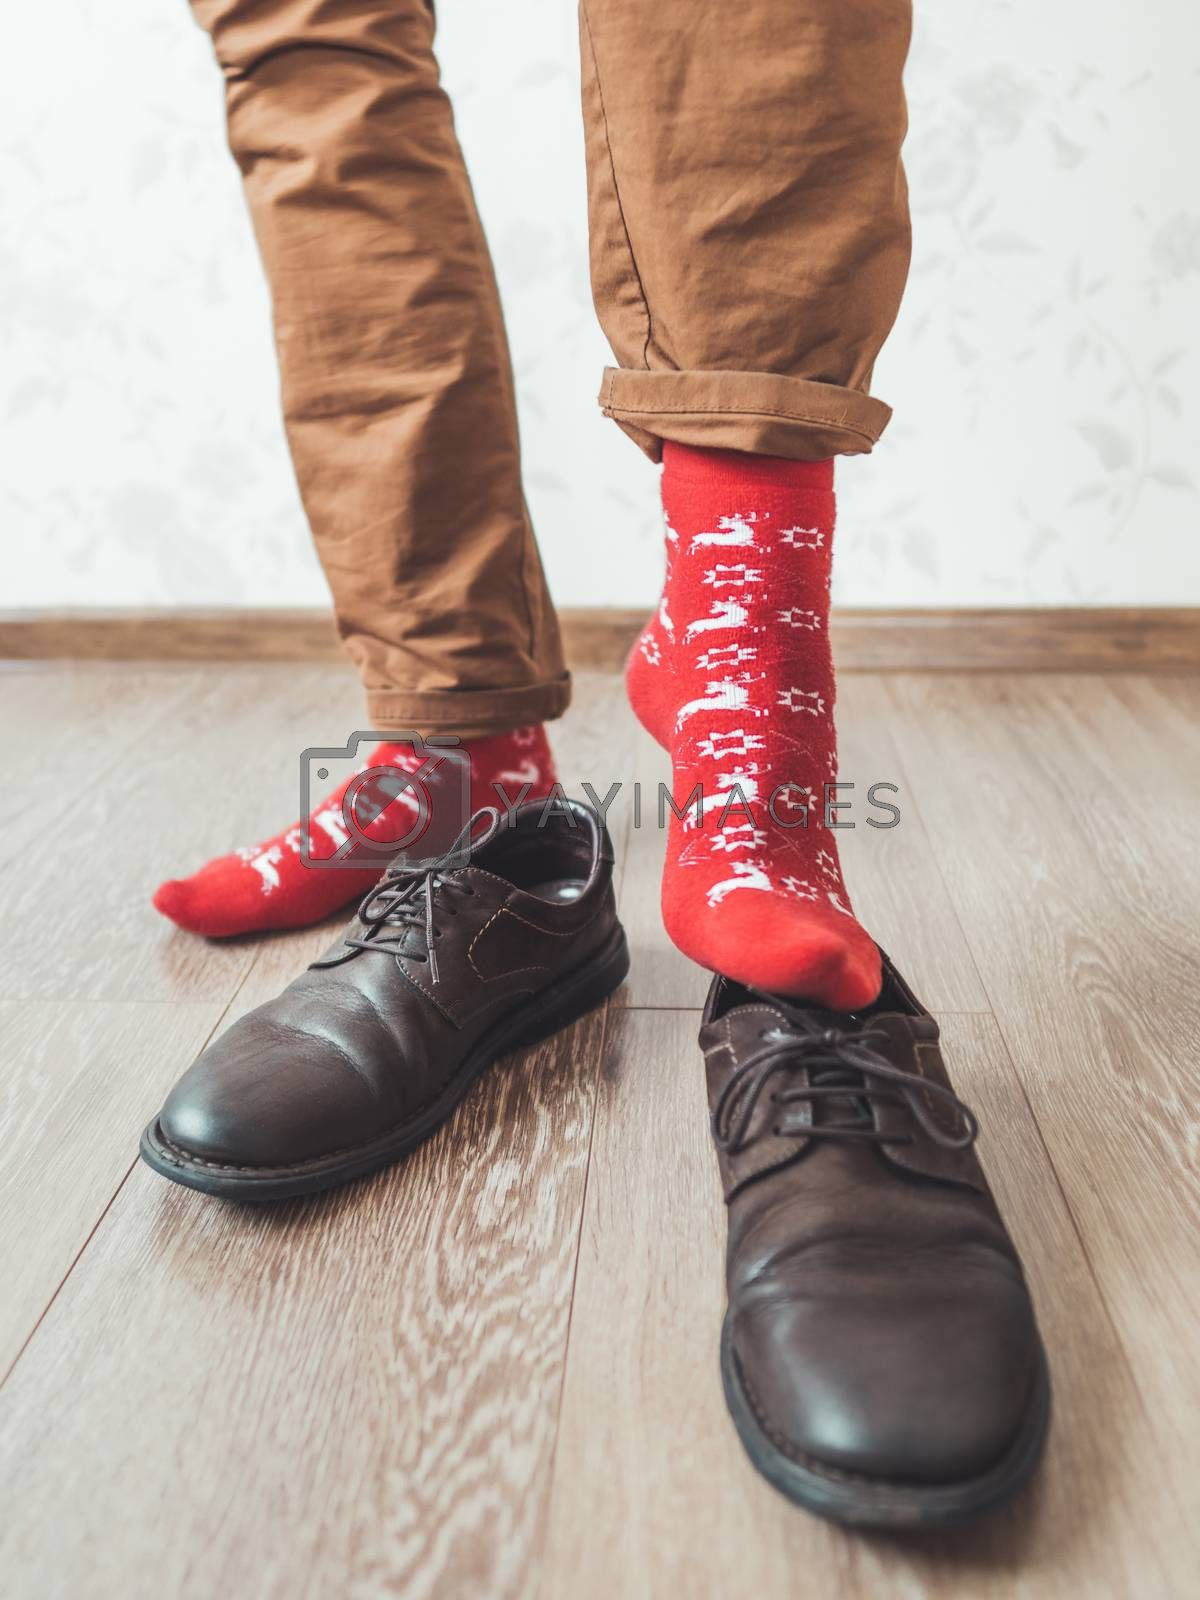 Royalty free image of Young man in chinos trousers and bright red socks with reindeers by aksenovko